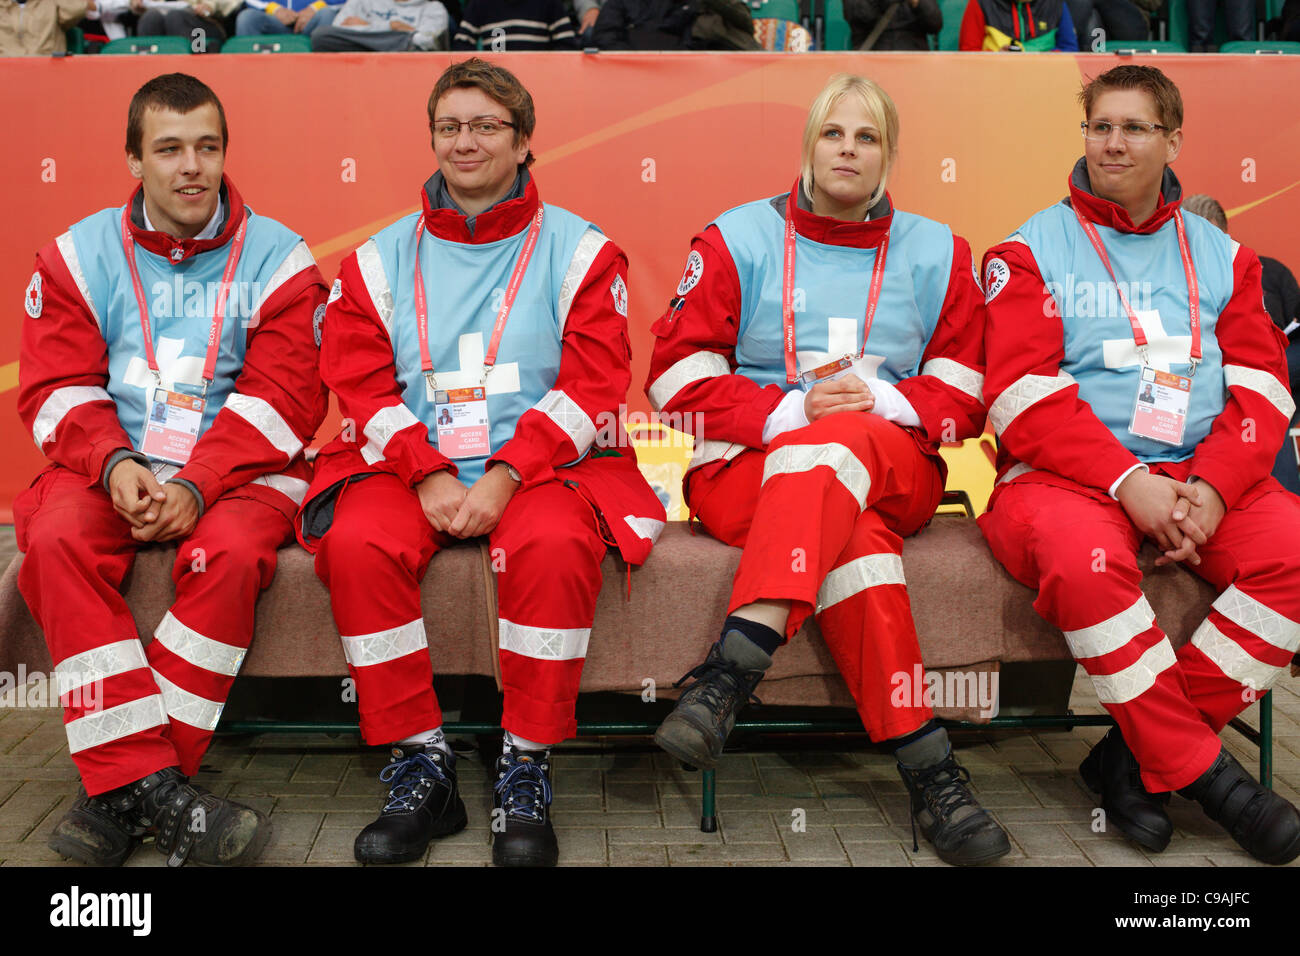 Emergency medical technicians sit on the sidelines at a FIFA Women's World Cup Group C match between Brazil - Stock Image